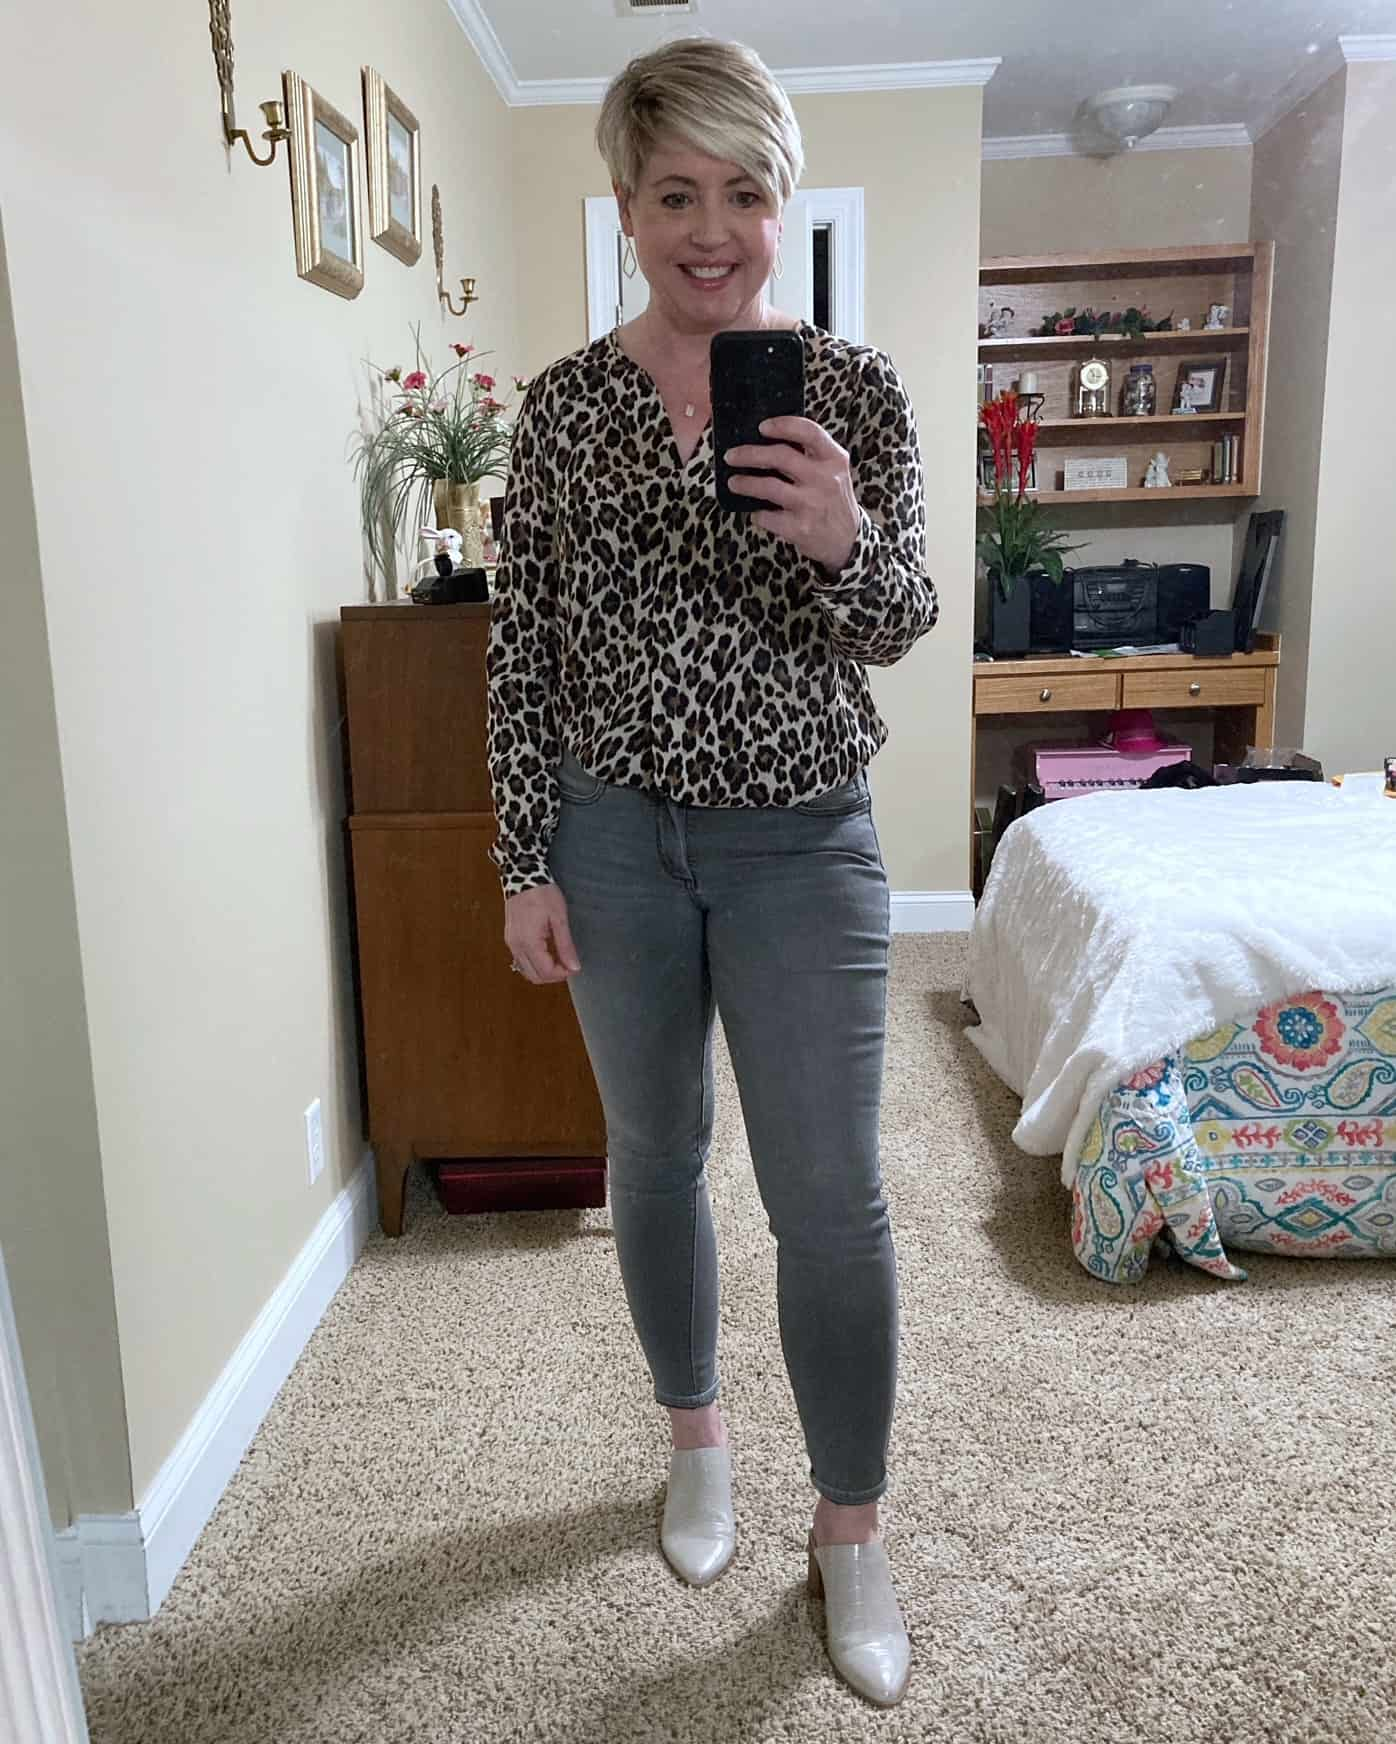 leopard print top with grey jeans